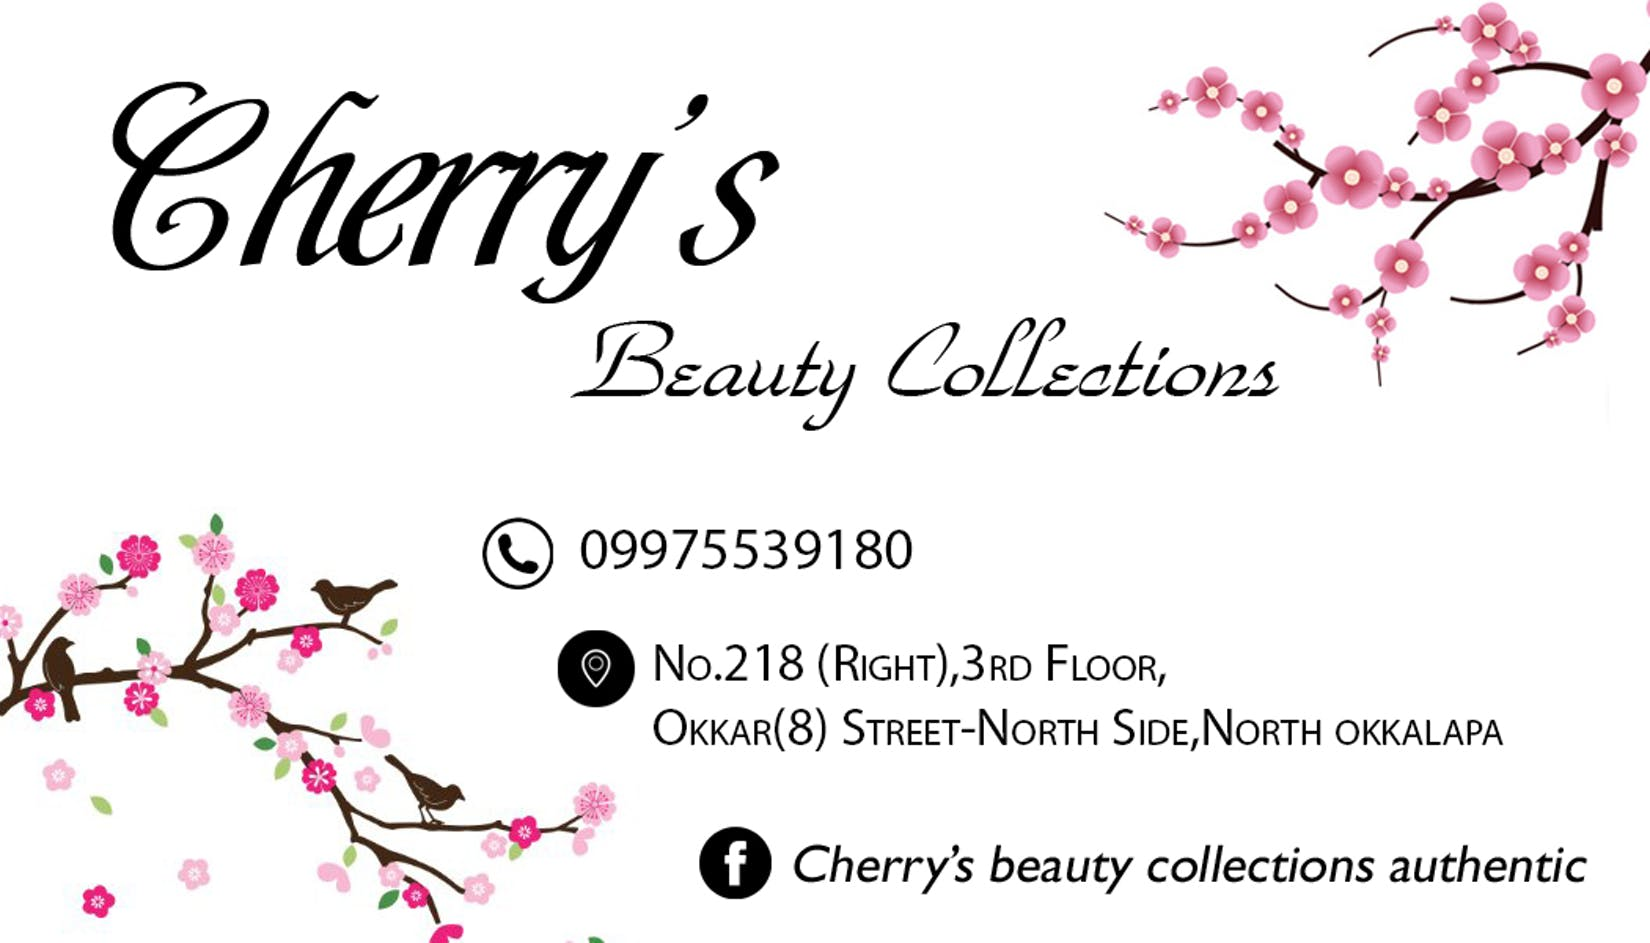 Cherry's beauty collections Authentic | Beauty